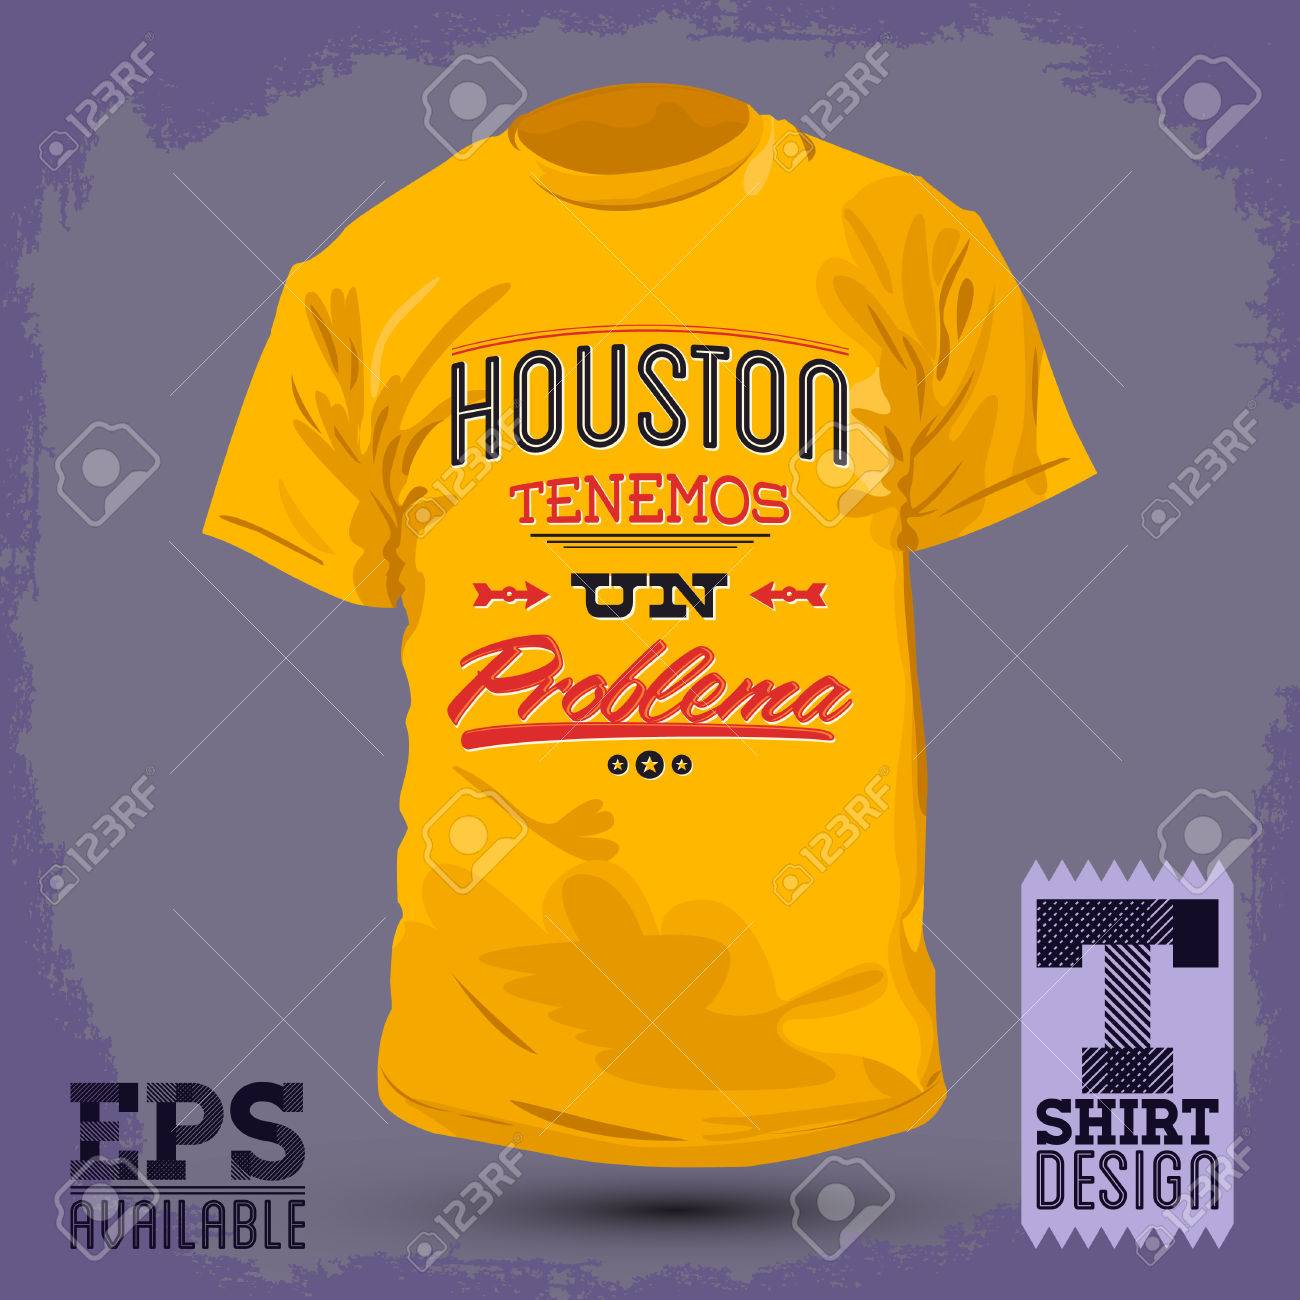 Graphic T Shirt Design Houston Tenemos Un Problema Houston